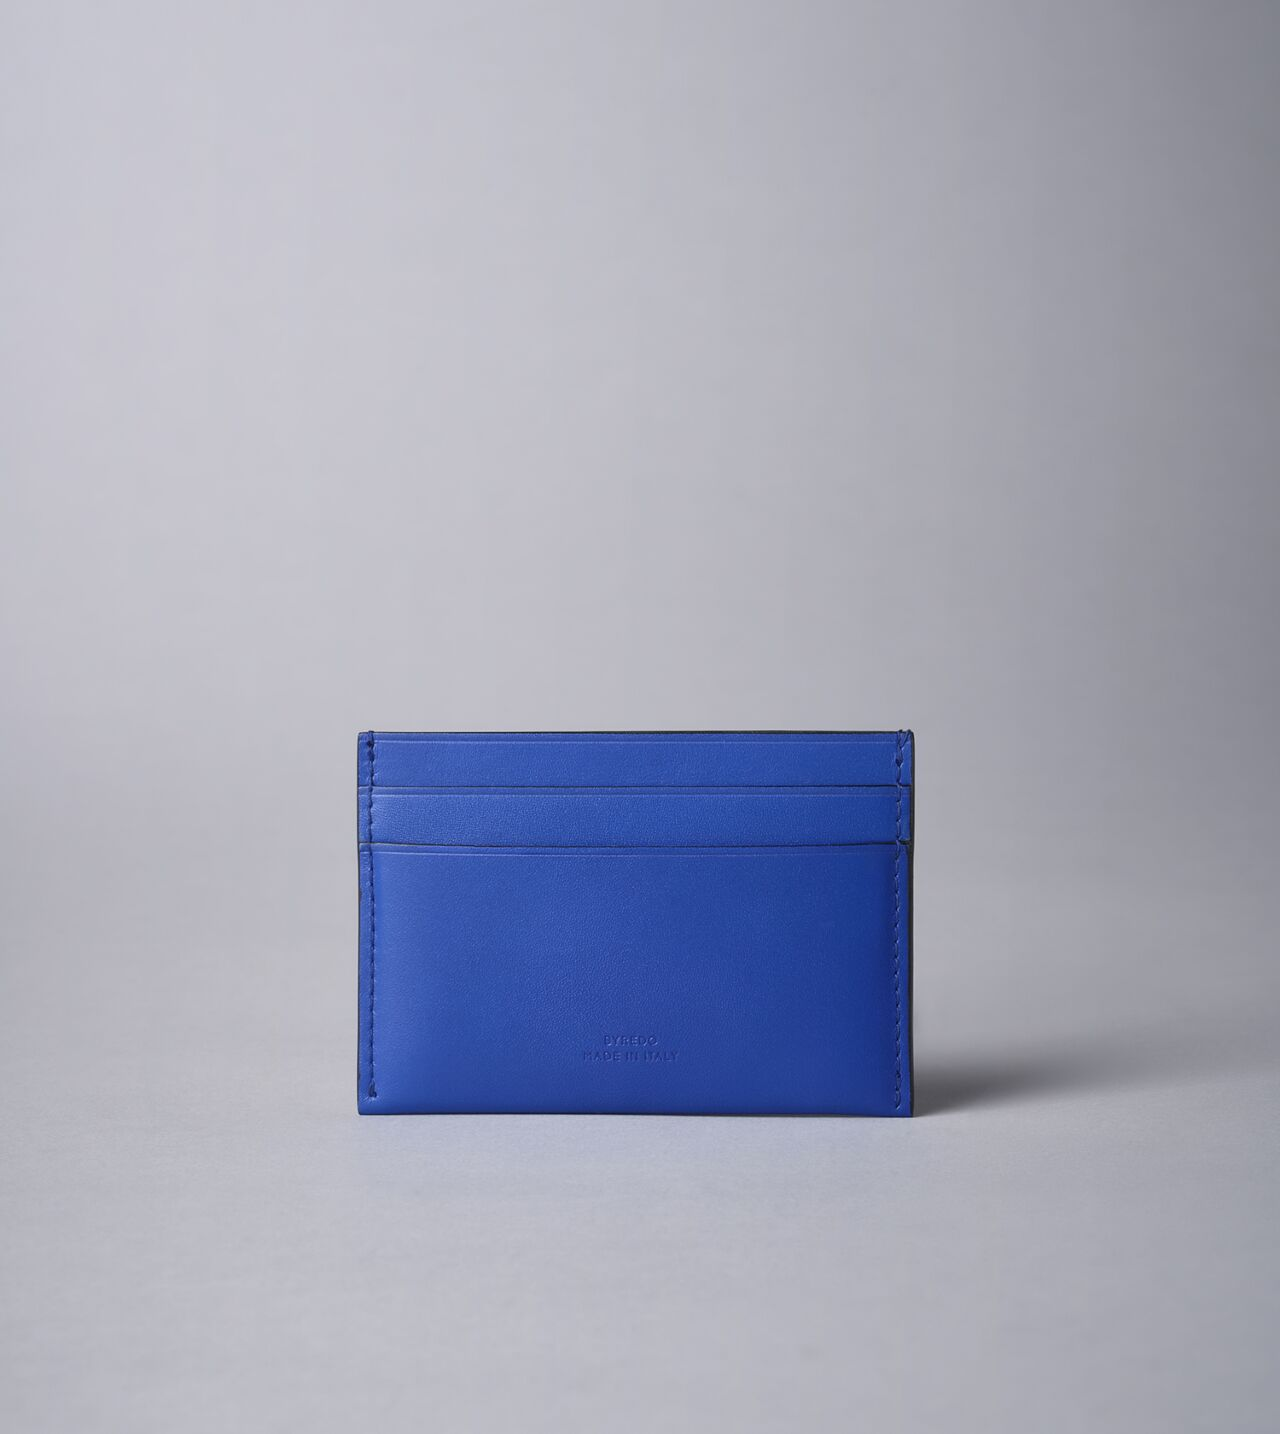 Picture of Byredo Credit card holder in Blue leather